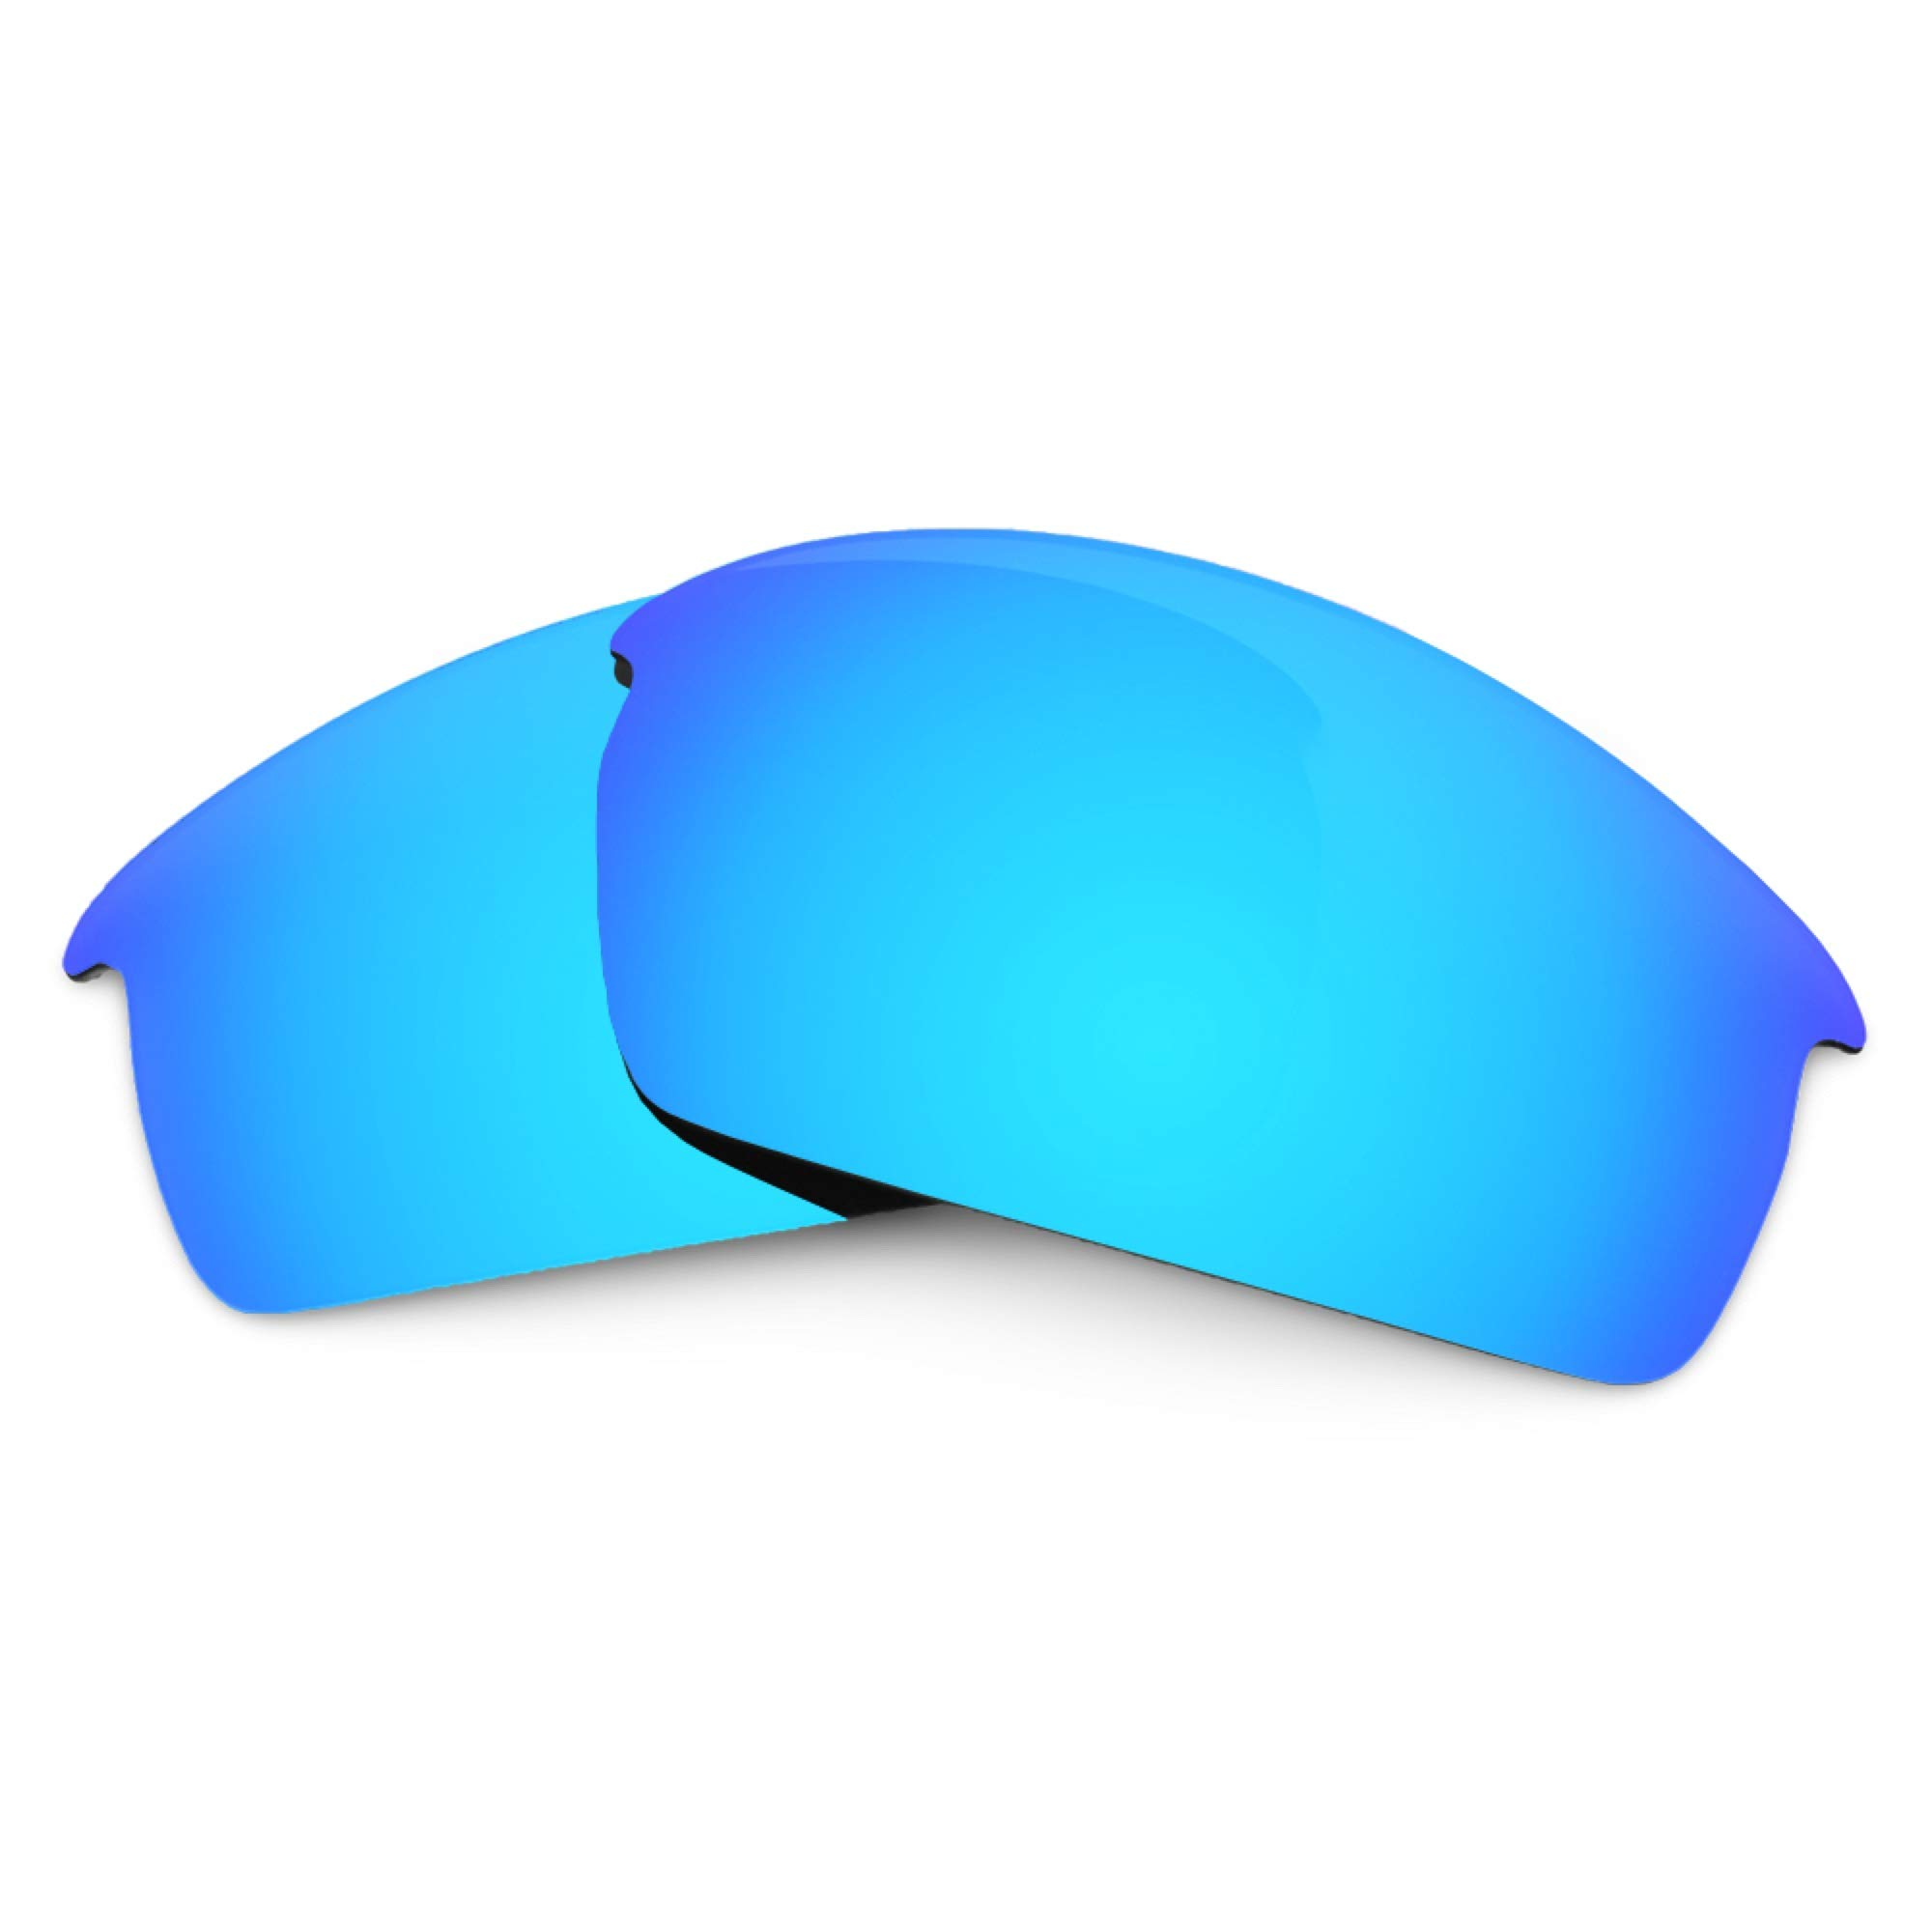 Revant Replacement Lenses for Oakley Thump Pro, Polarized, Ice Blue MirrorShield